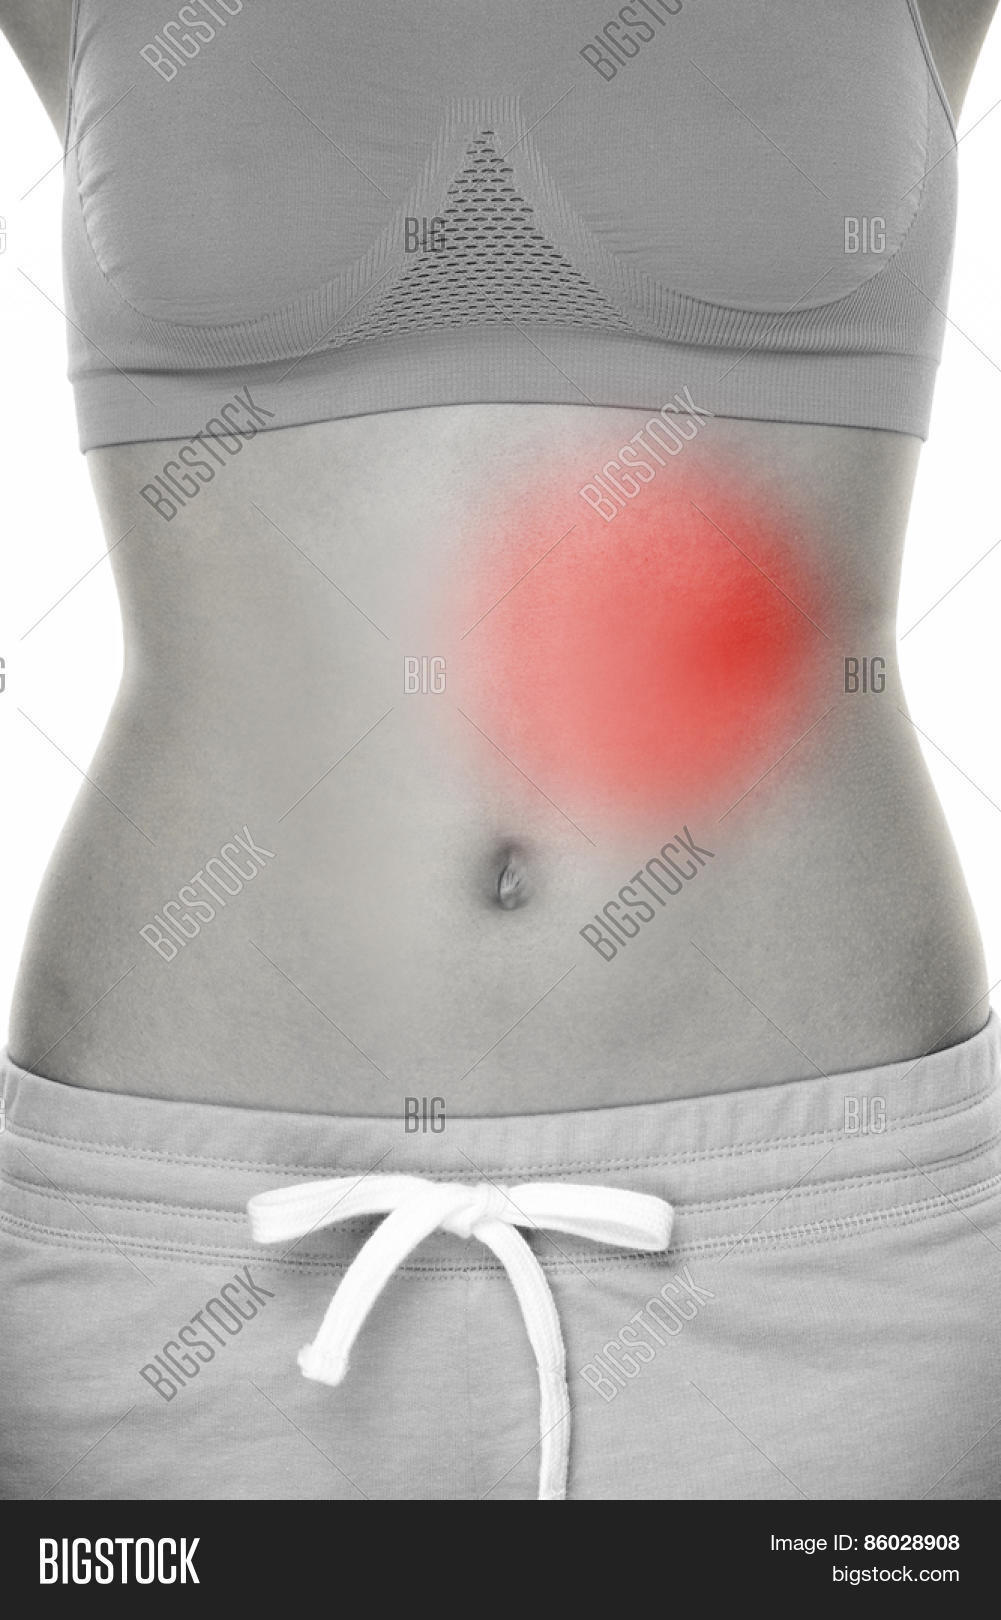 Female Body Pain Image Photo Free Trial Bigstock